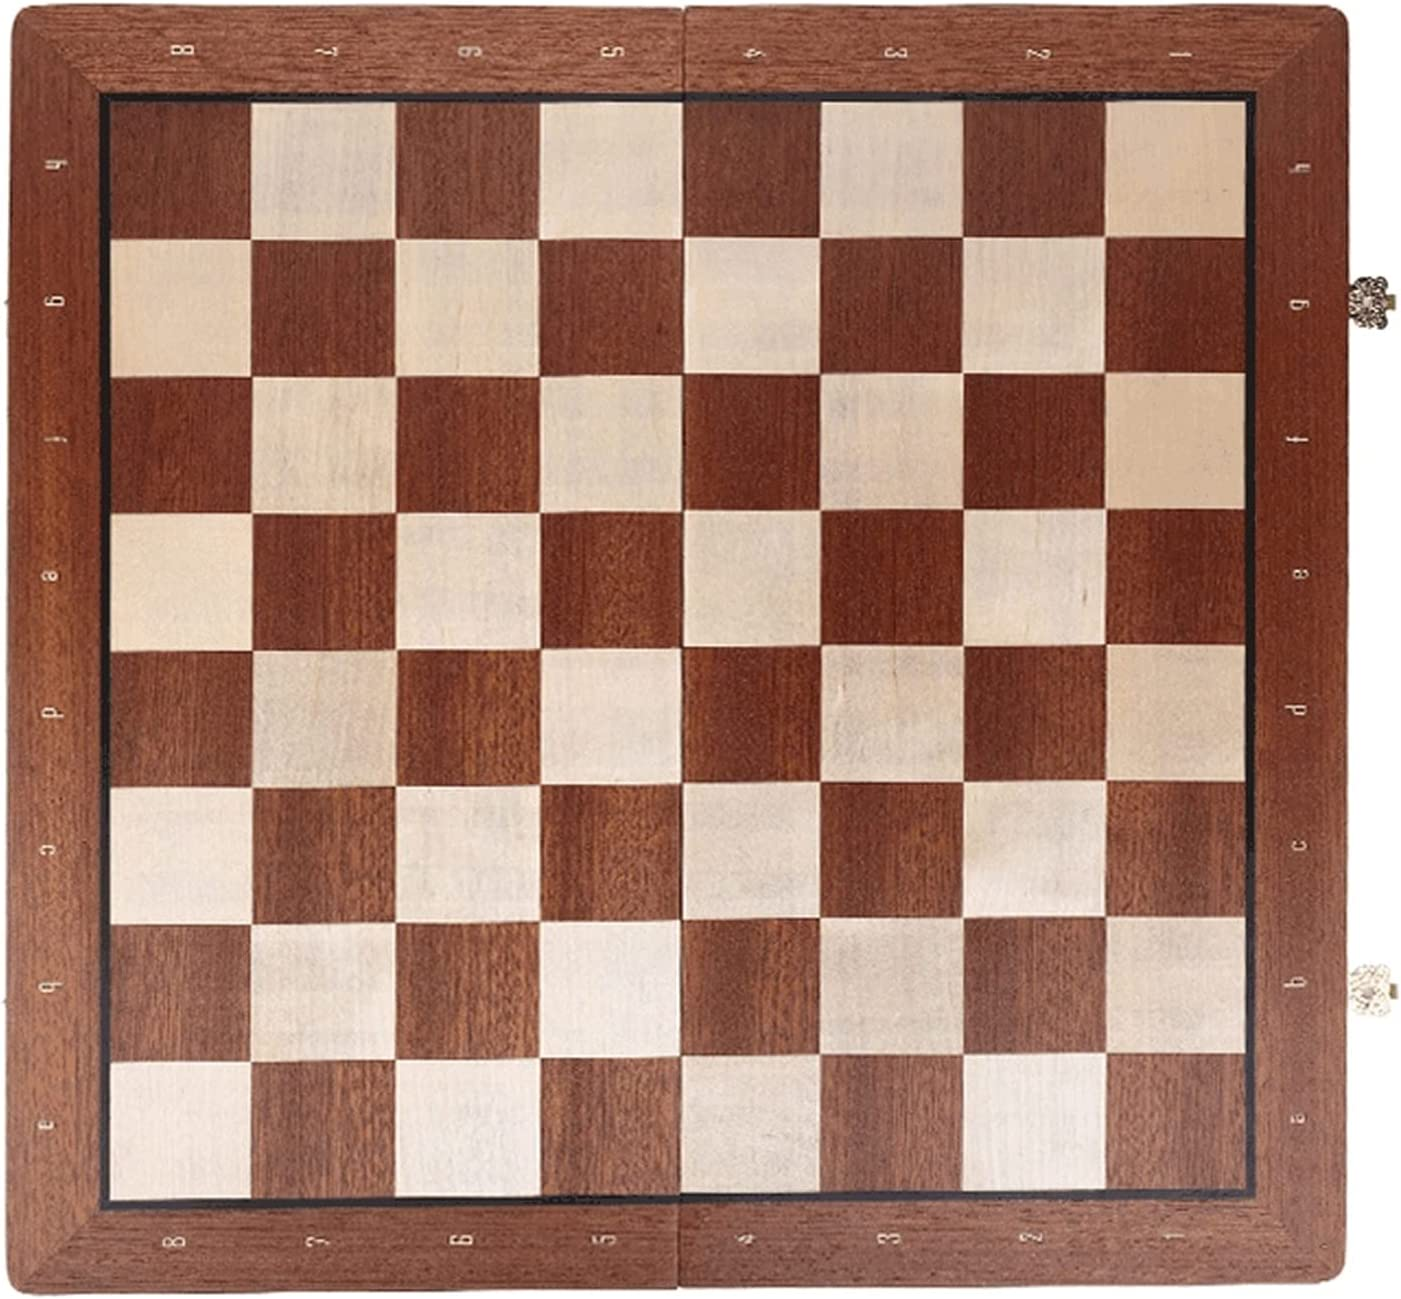 XIAOQIU Max 87% OFF Chess Set Folding with Wooden Finally popular brand Pie